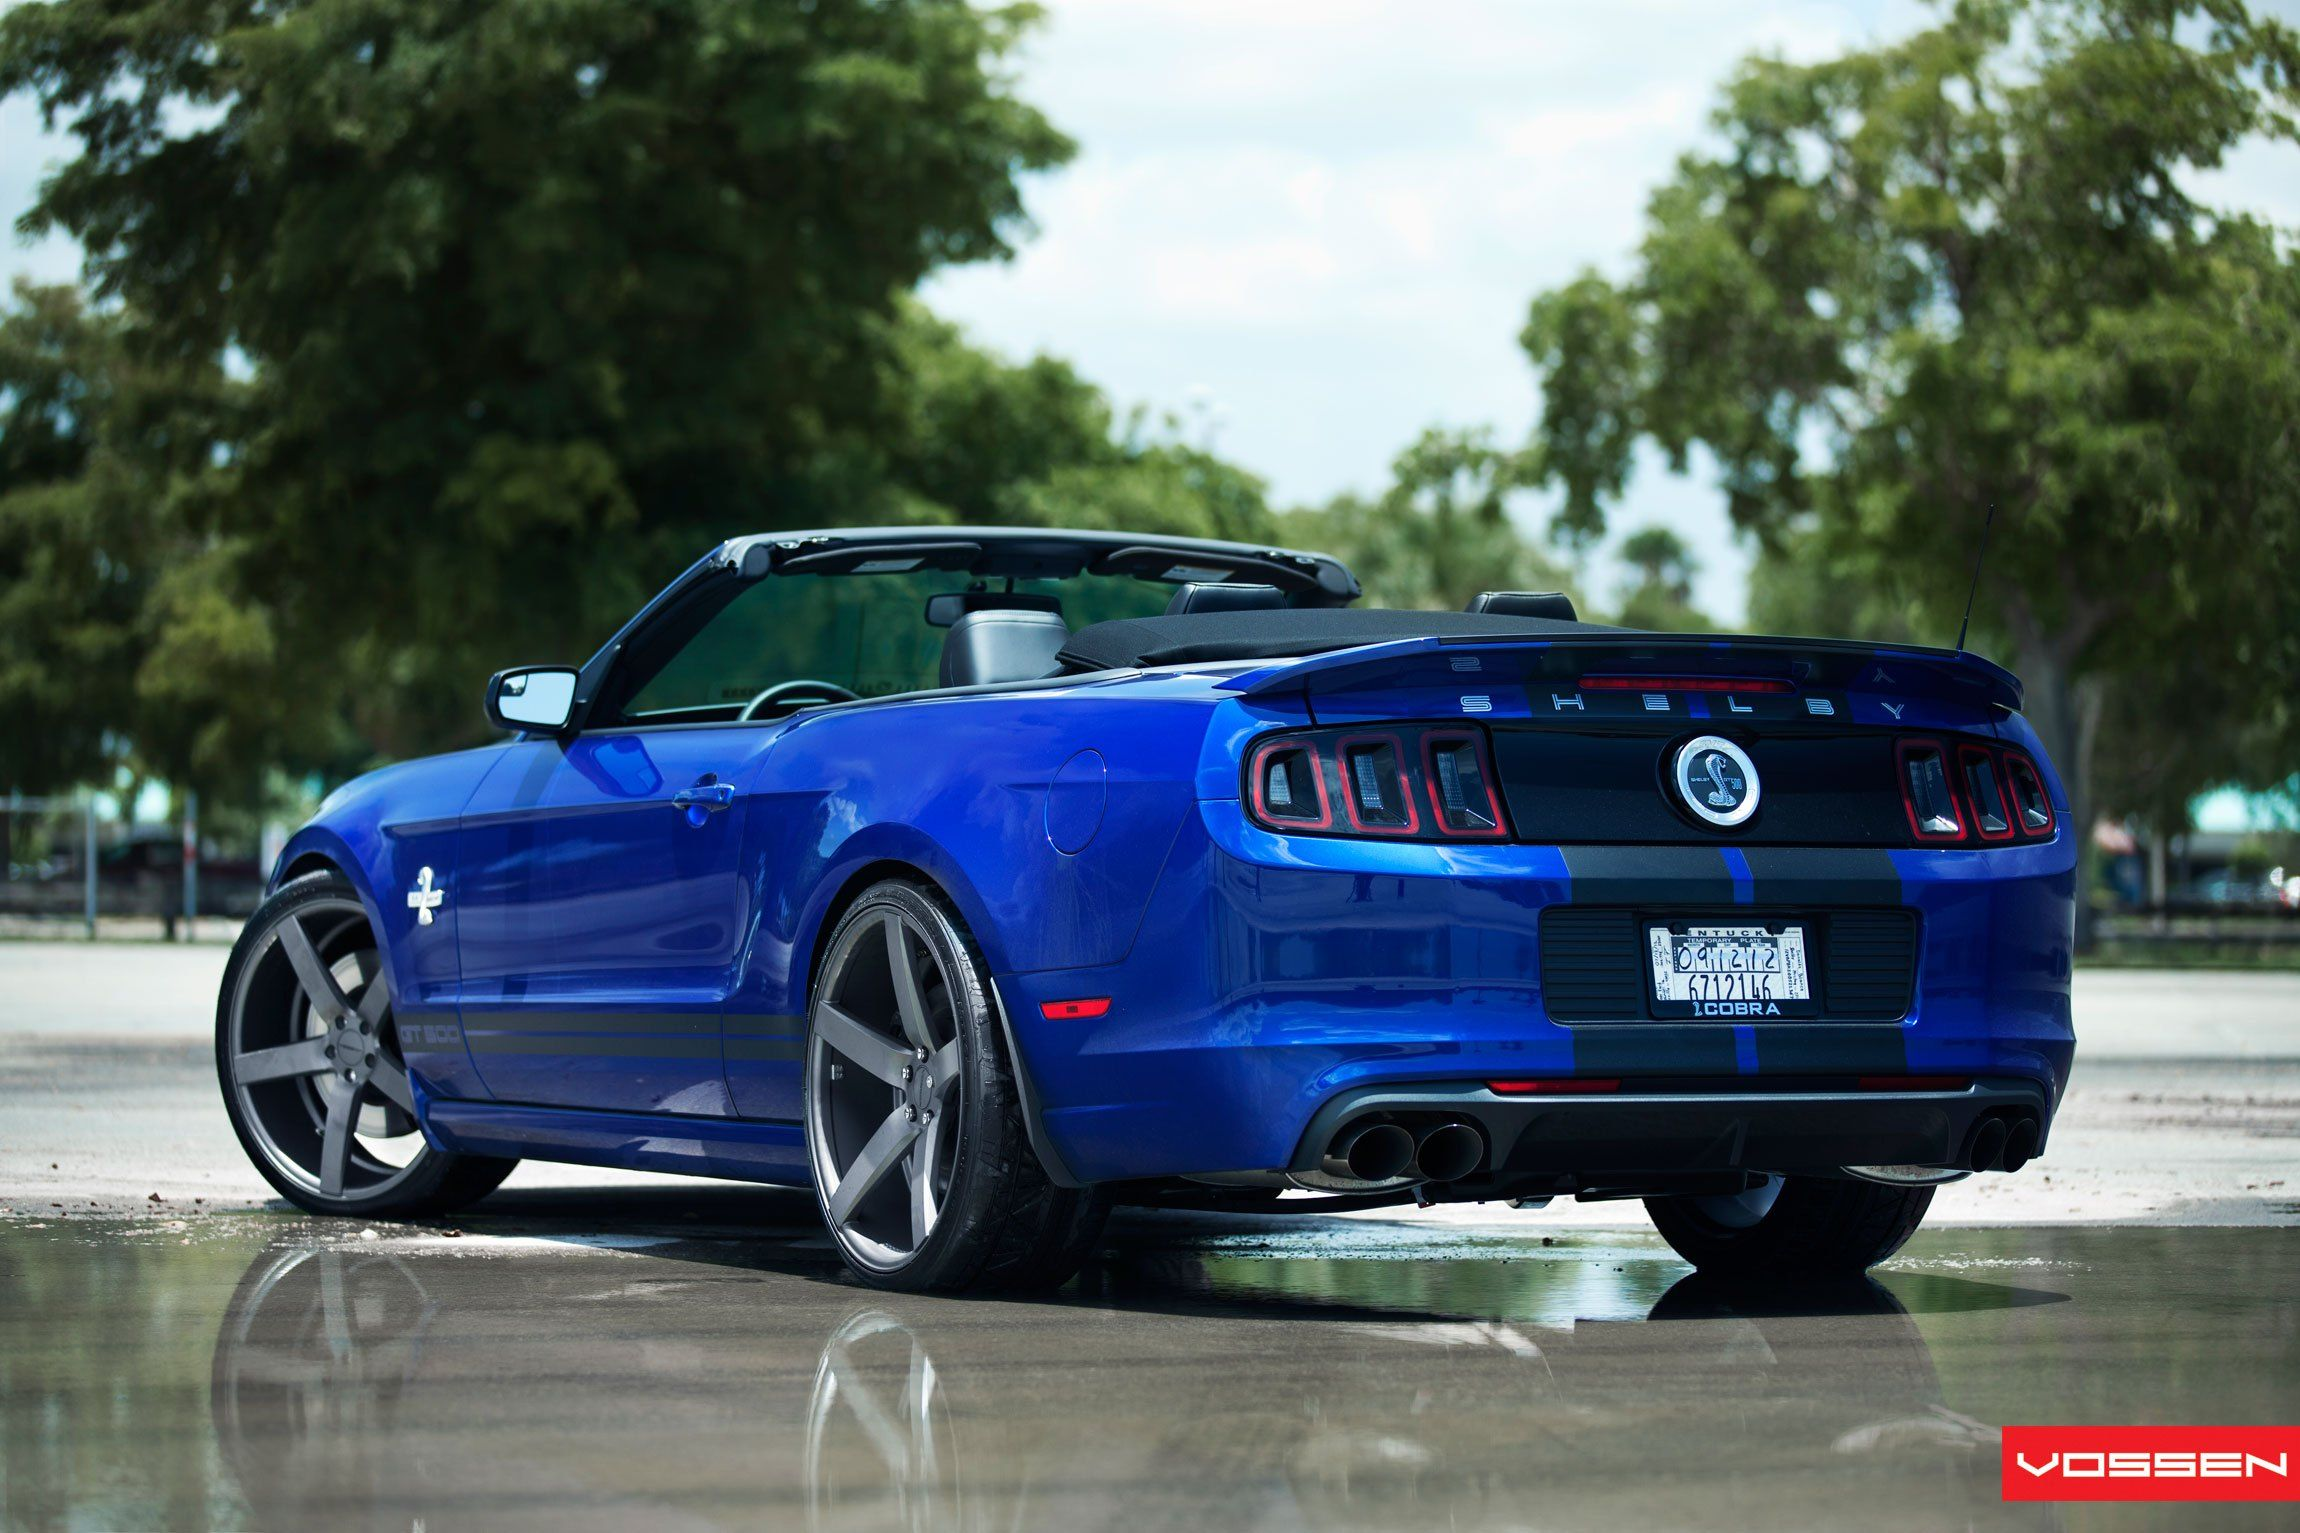 Convertible Electric Blue Ford Mustang Shelby Customized To Reveal Its Wild Nature Mustang Shelby Ford Mustang Shelby Ford Mustang